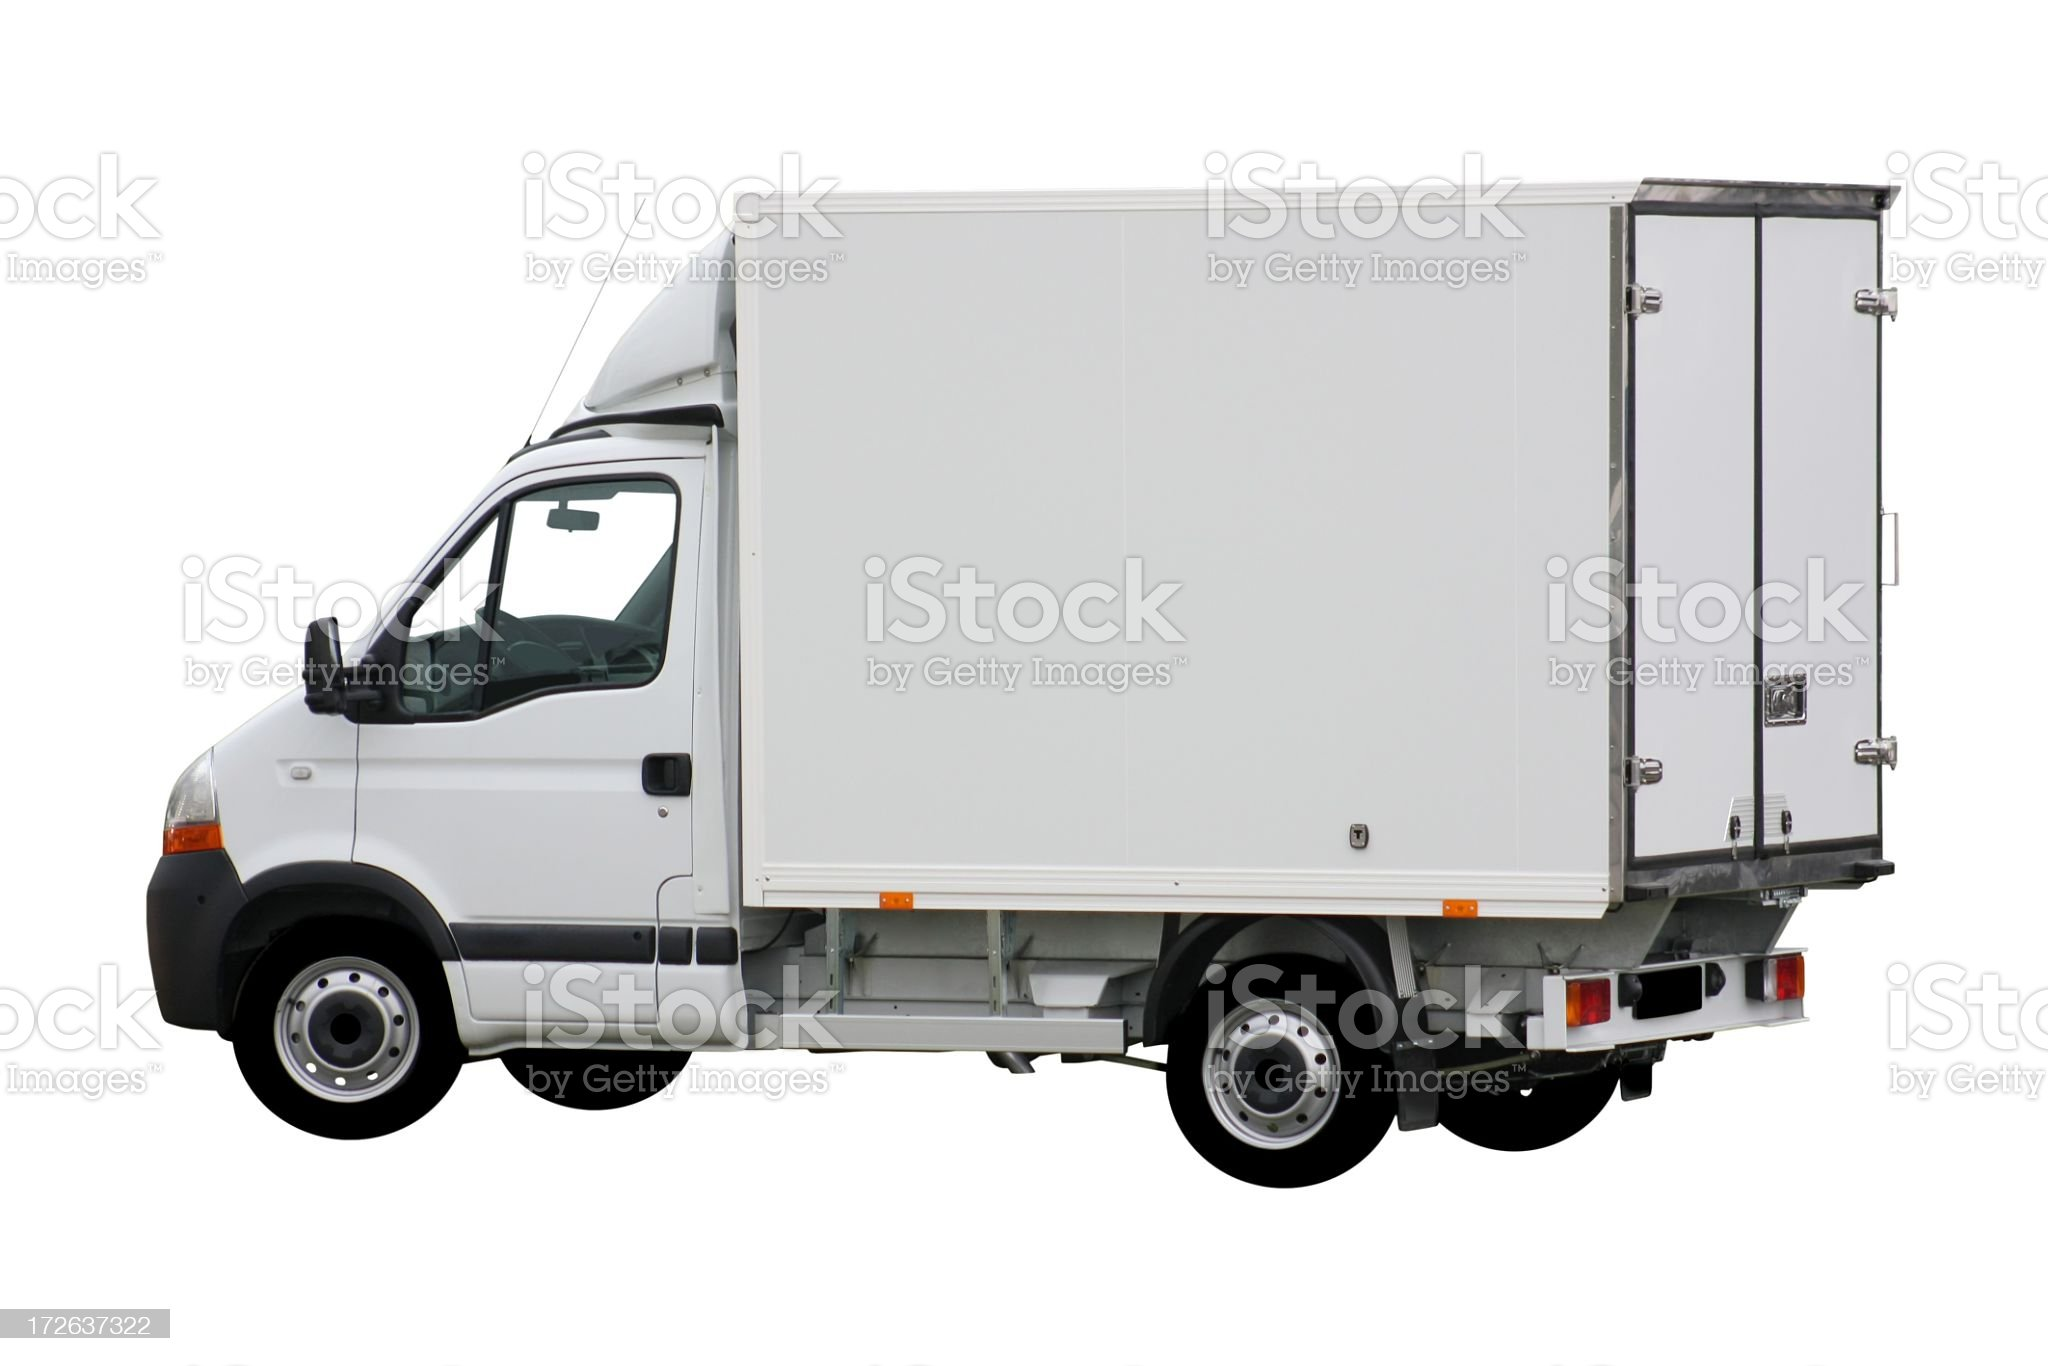 White delivery truck with box shape royalty-free stock photo